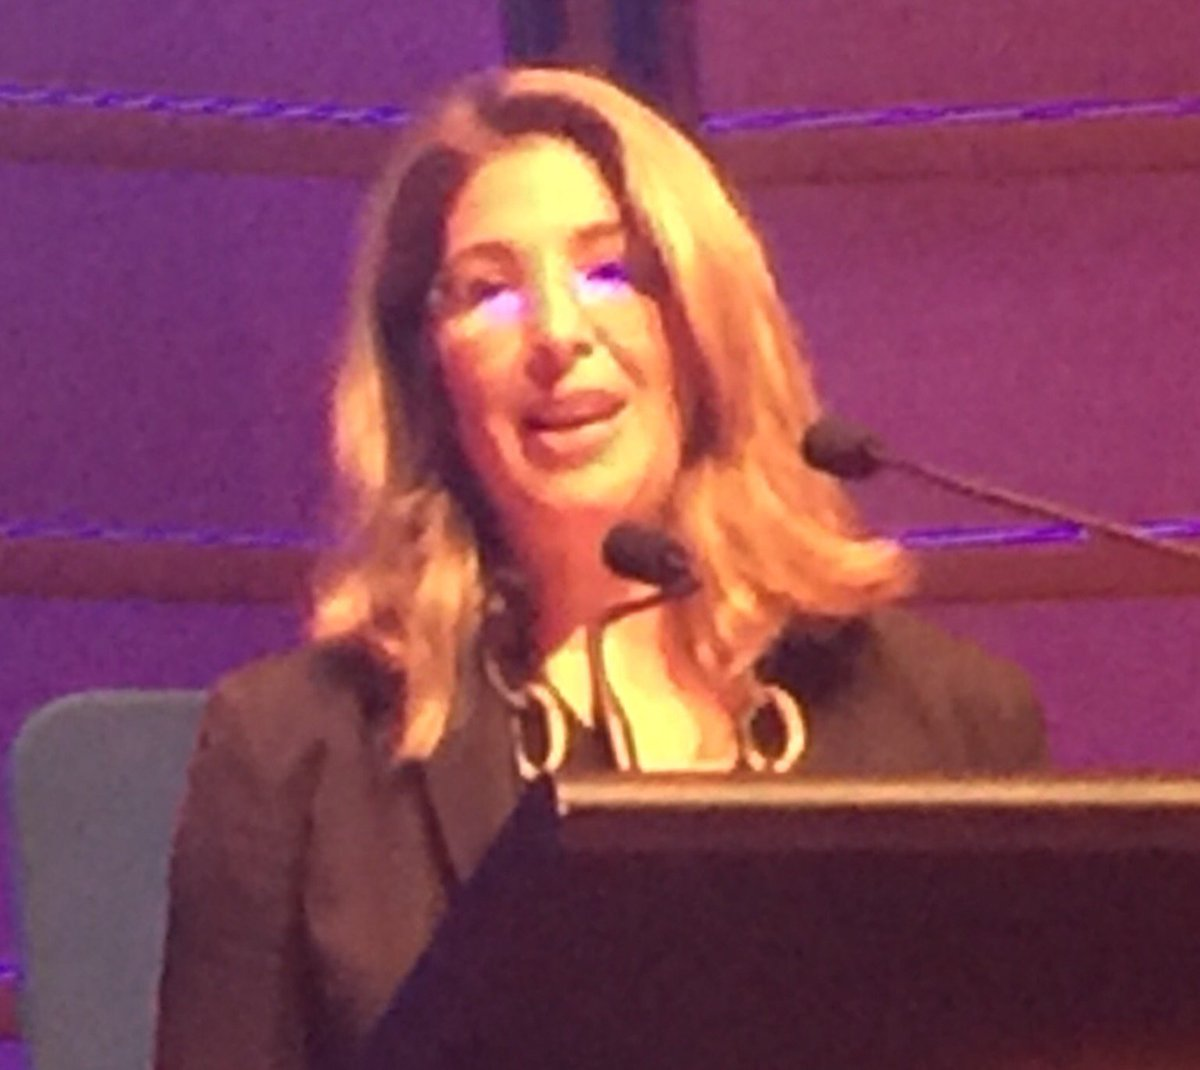 """We're not going to give up."" - @NaomiAKlein  #Sydney2030 @SydPeaceFound @Guardian https://t.co/V3AloLXXn2"